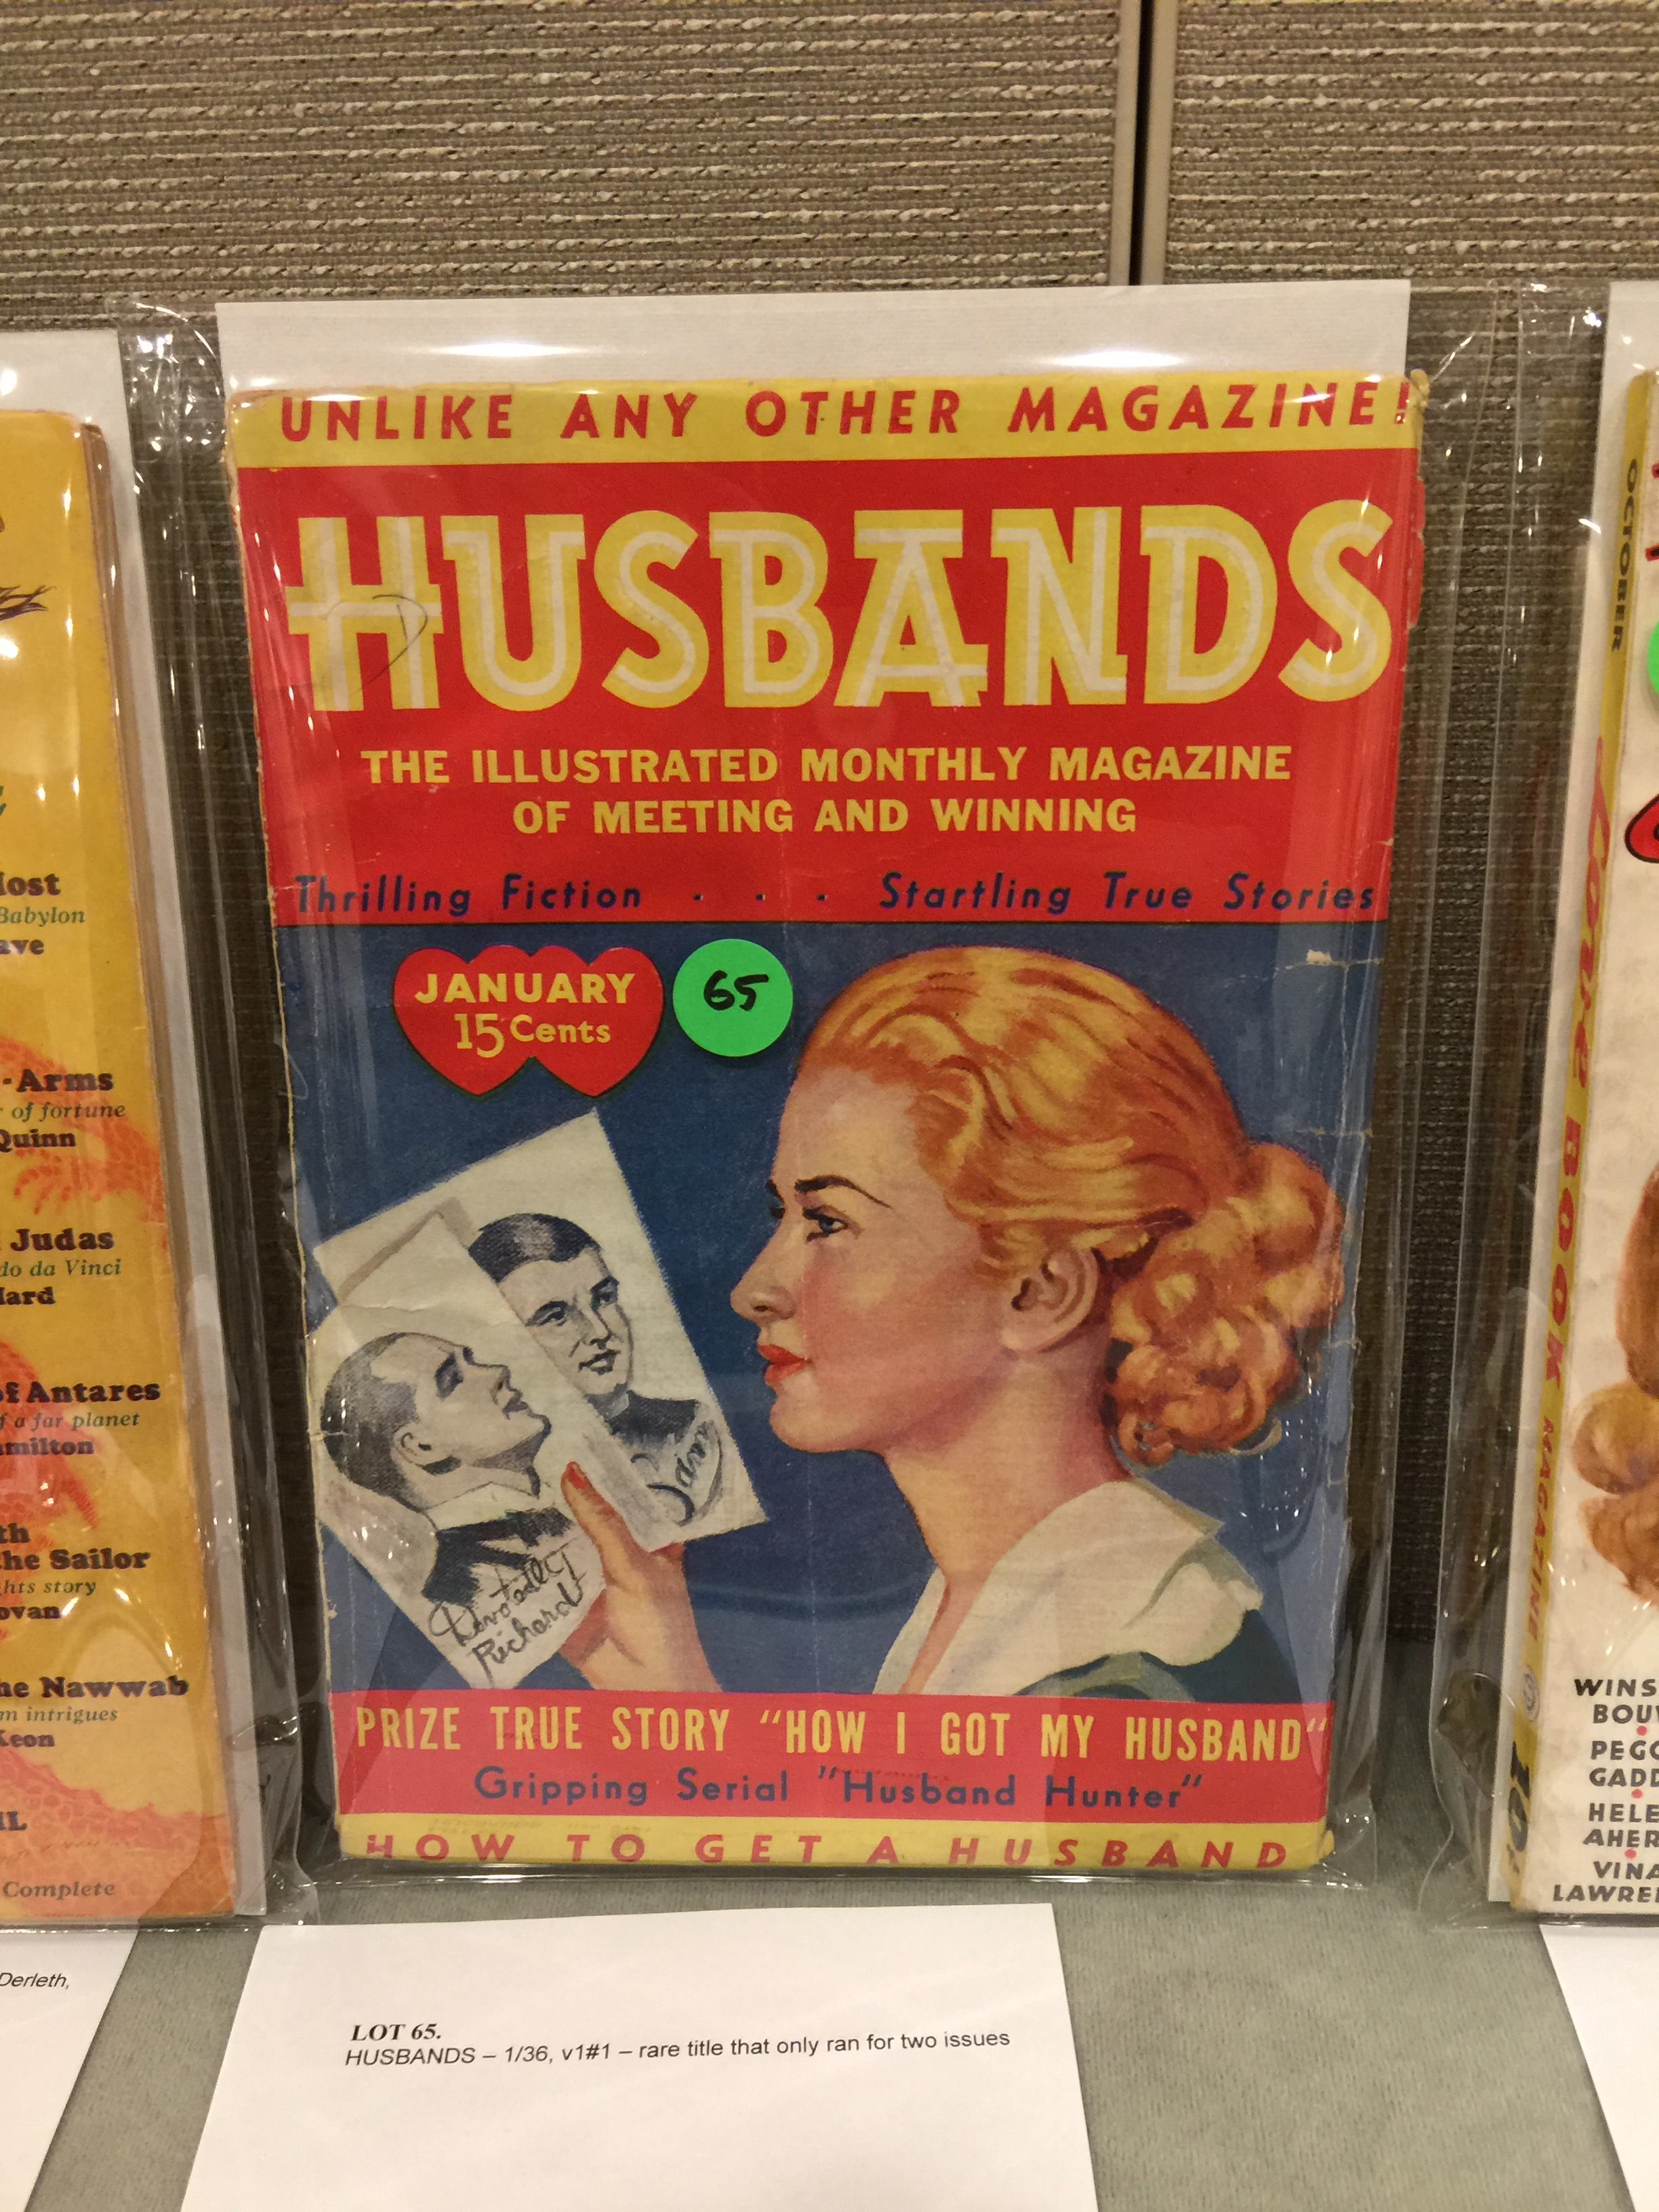 A rarity - one issue pulp Husbands, what were they thinking?